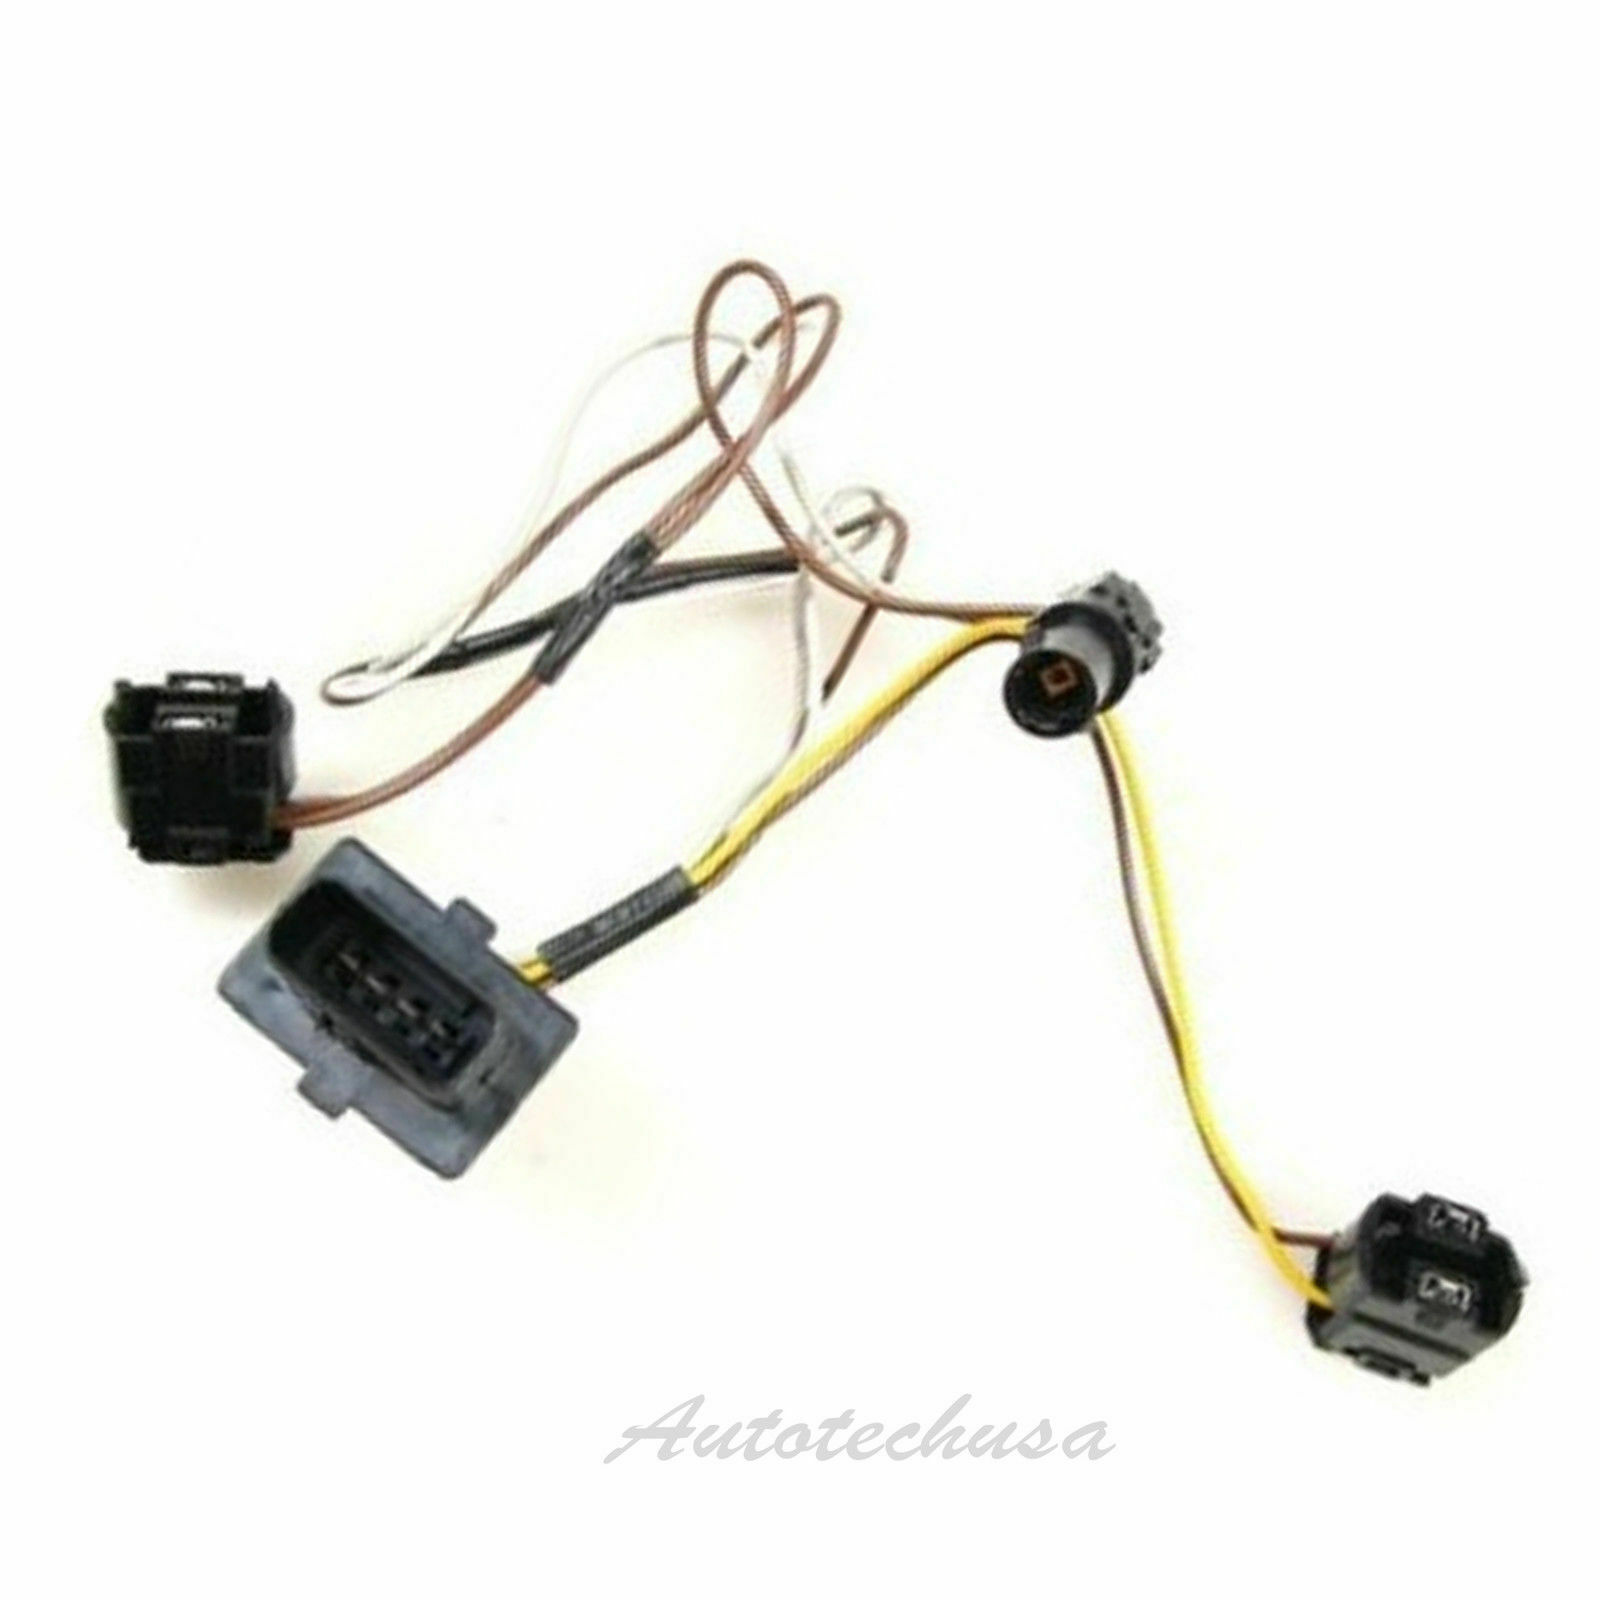 Wiring Harness Connector Repair Solutions Peterbilt Wire Kit For Left Headlight B360